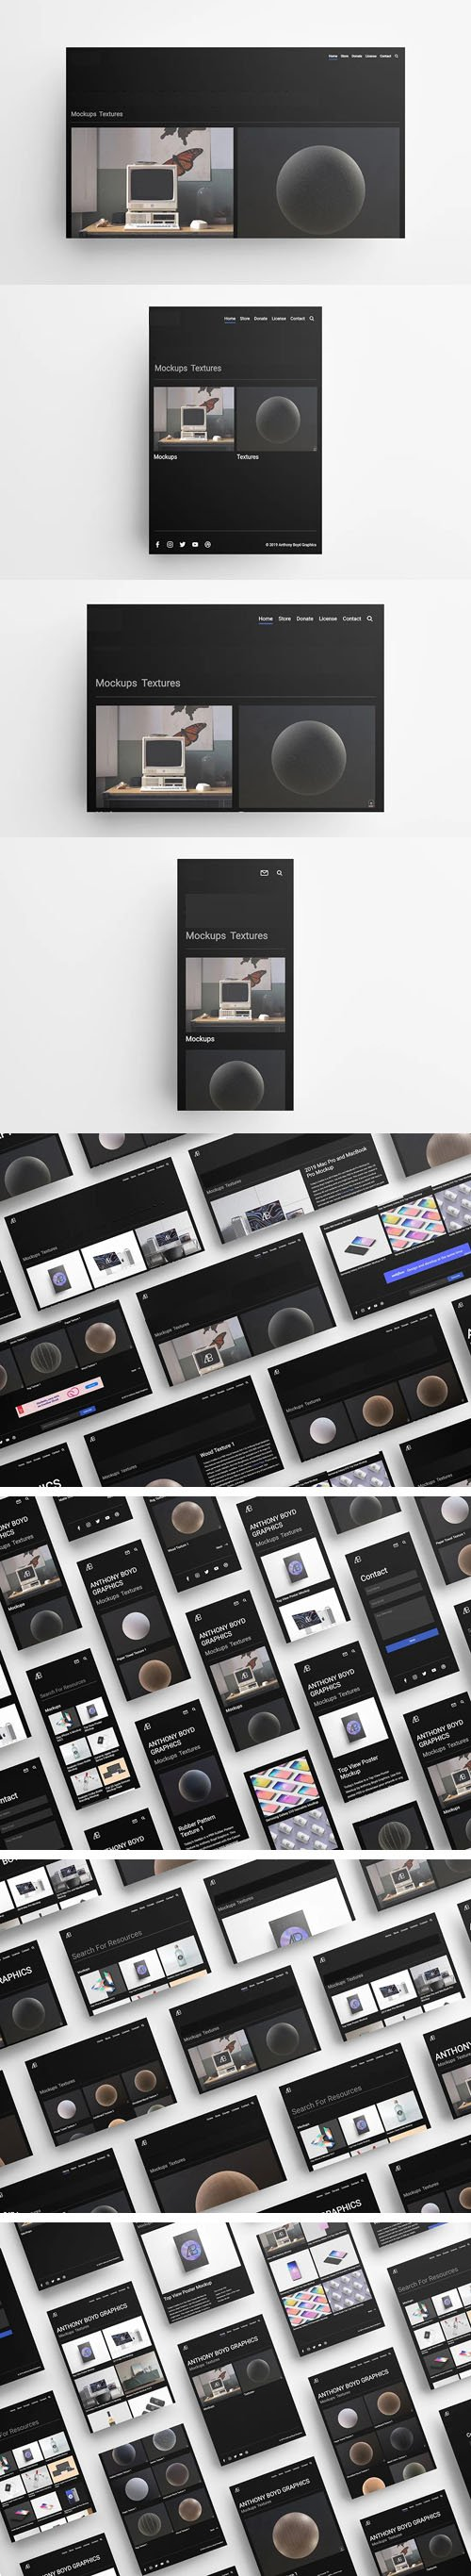 UI PSD Mockups Pack to Showcase Your Website Designs - Made with Cinema 4D !